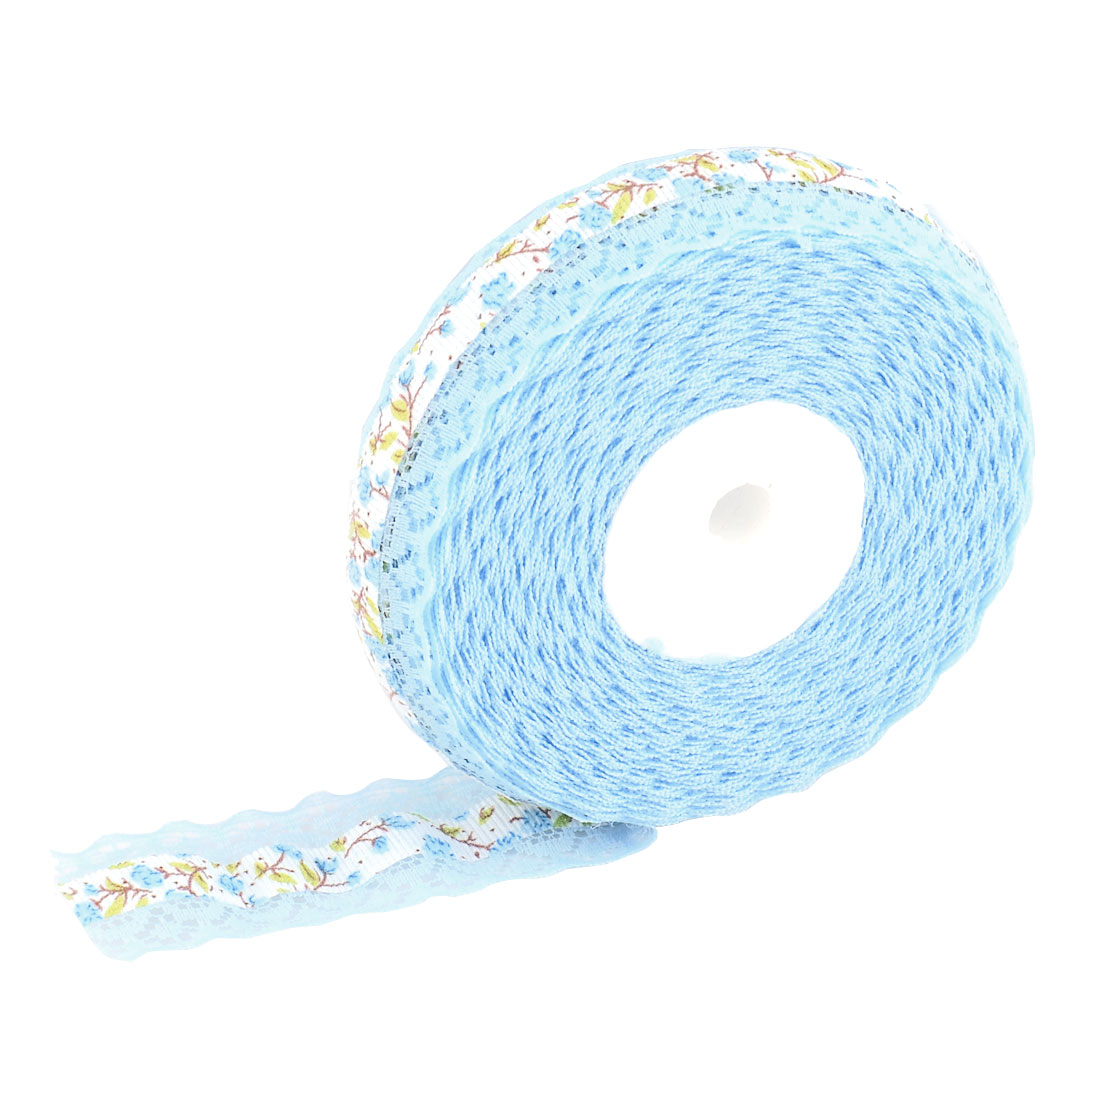 Household Wedding Lace Floral Pattern Decorative Crafting Ribbon Roll Light Blue - image 4 of 4